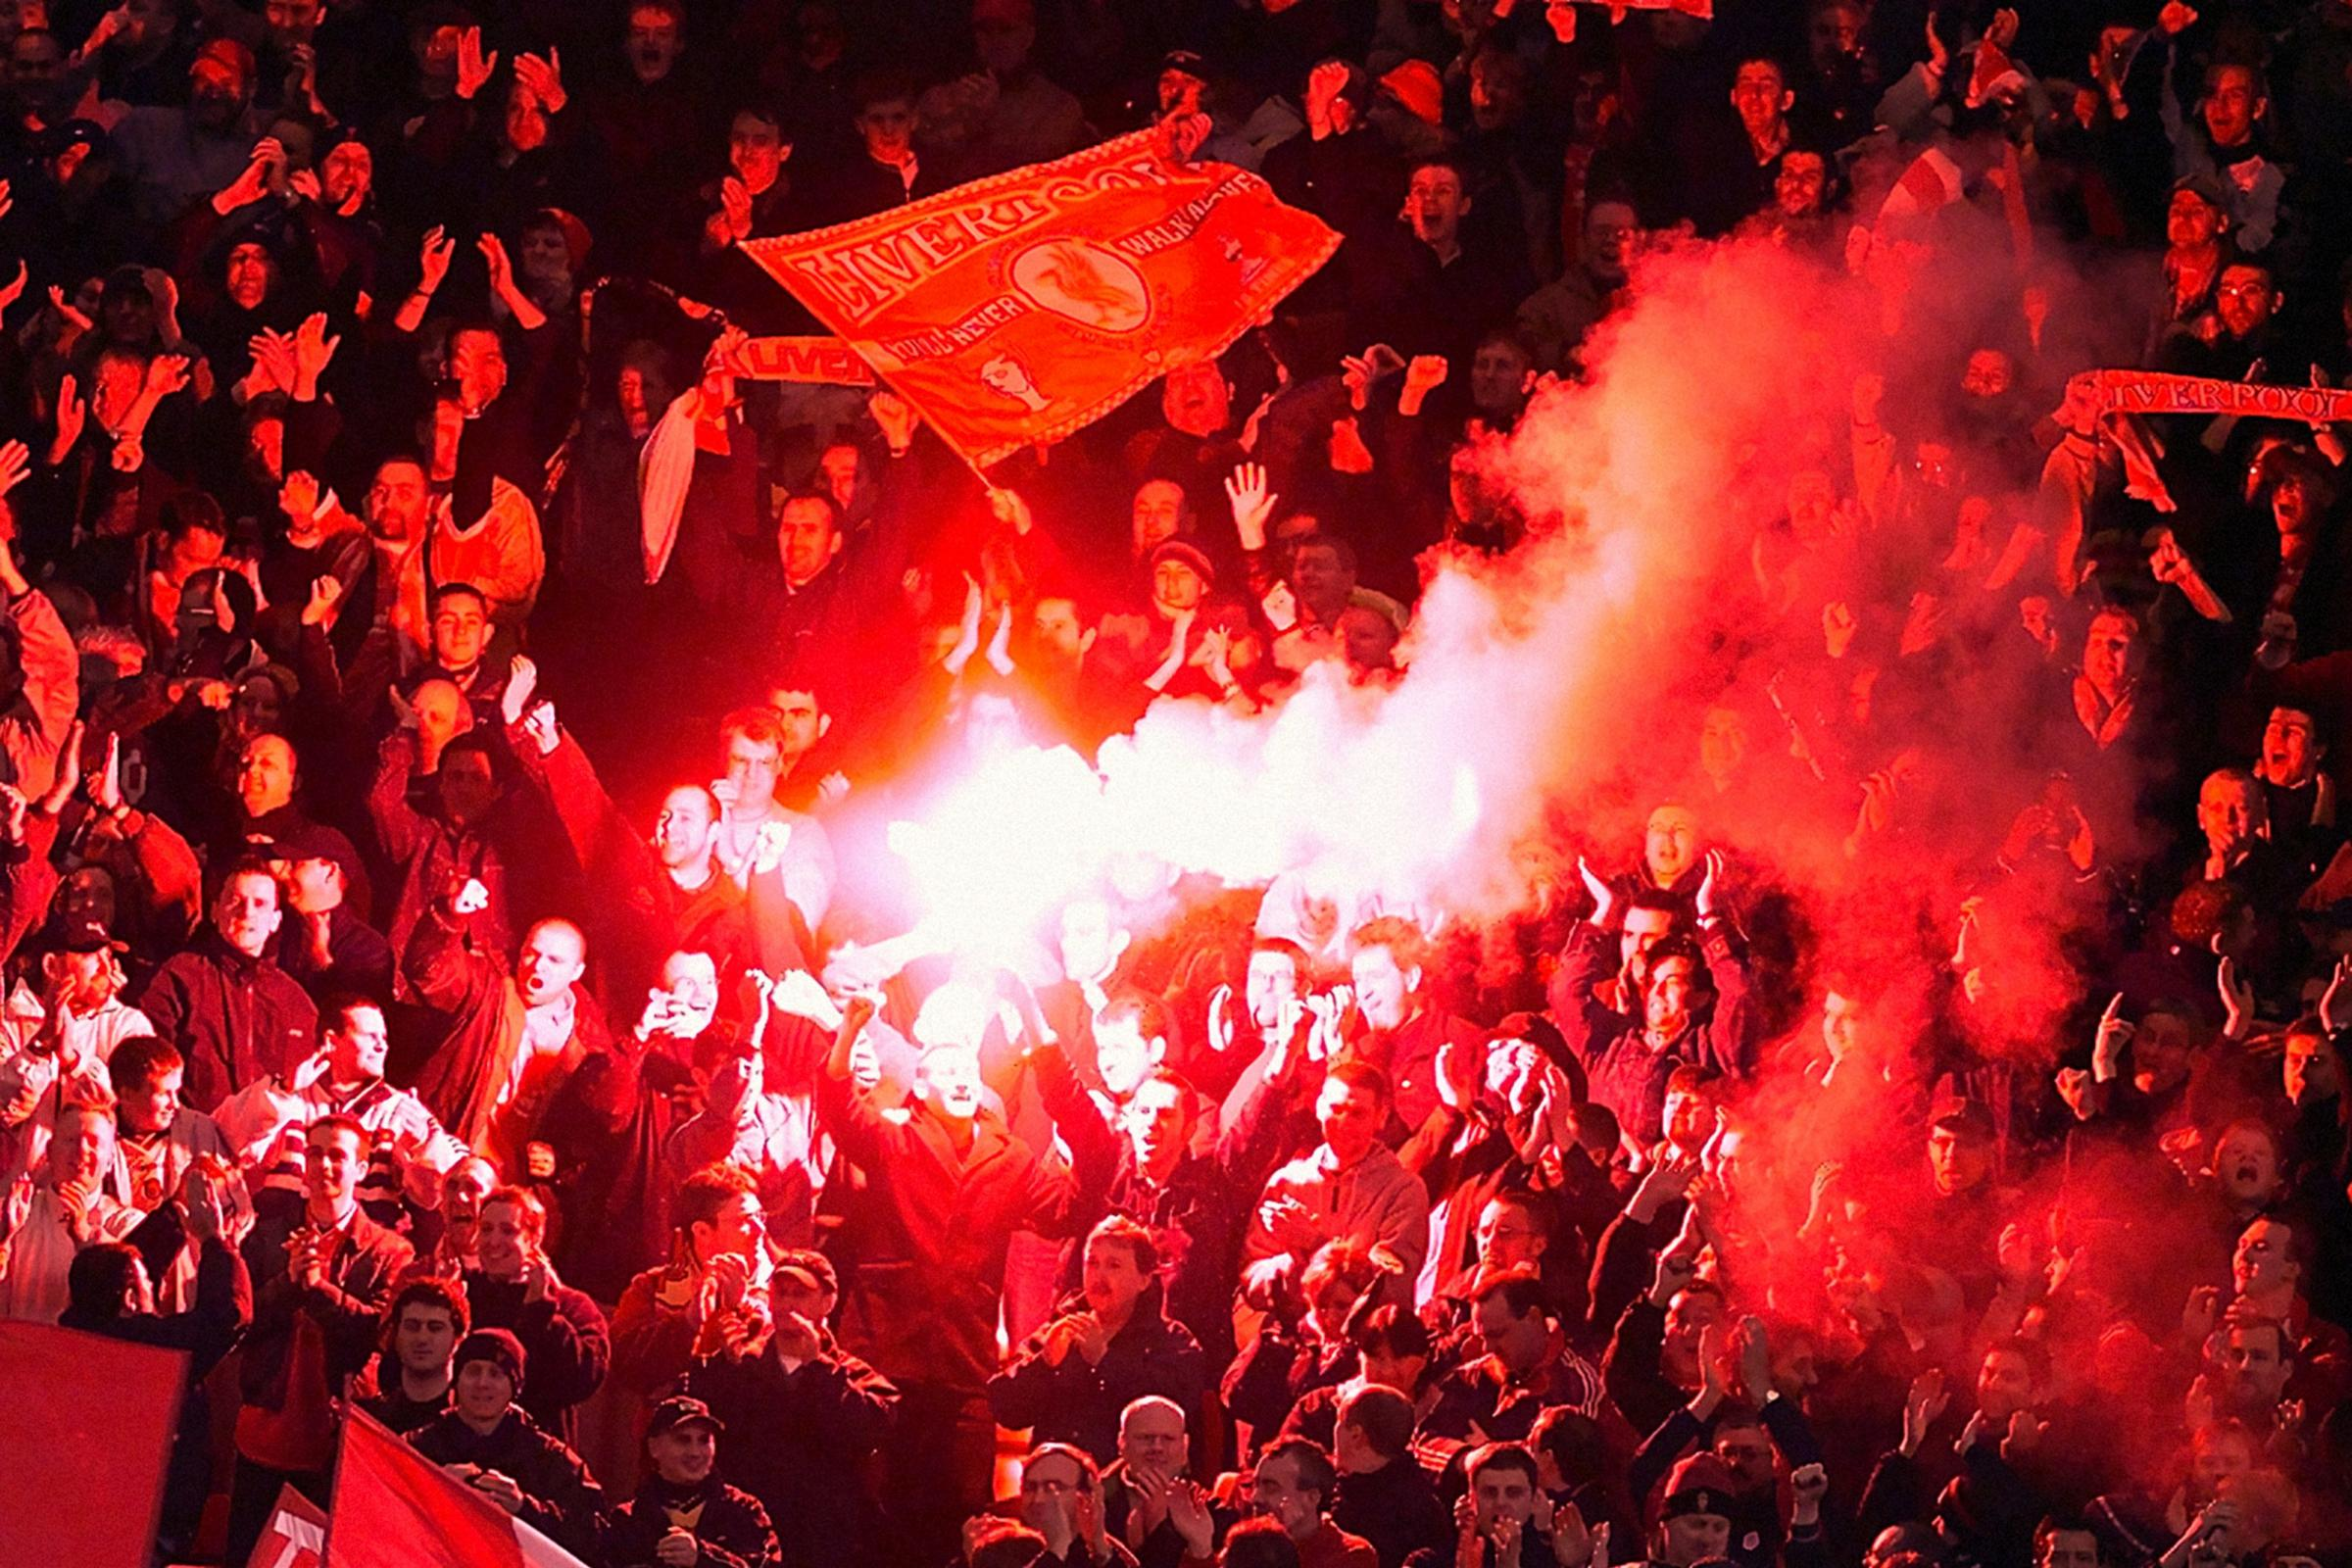 Merseyside Police are investigating after a flare was thrown during Liverpool's win over Chelsea at Anfield